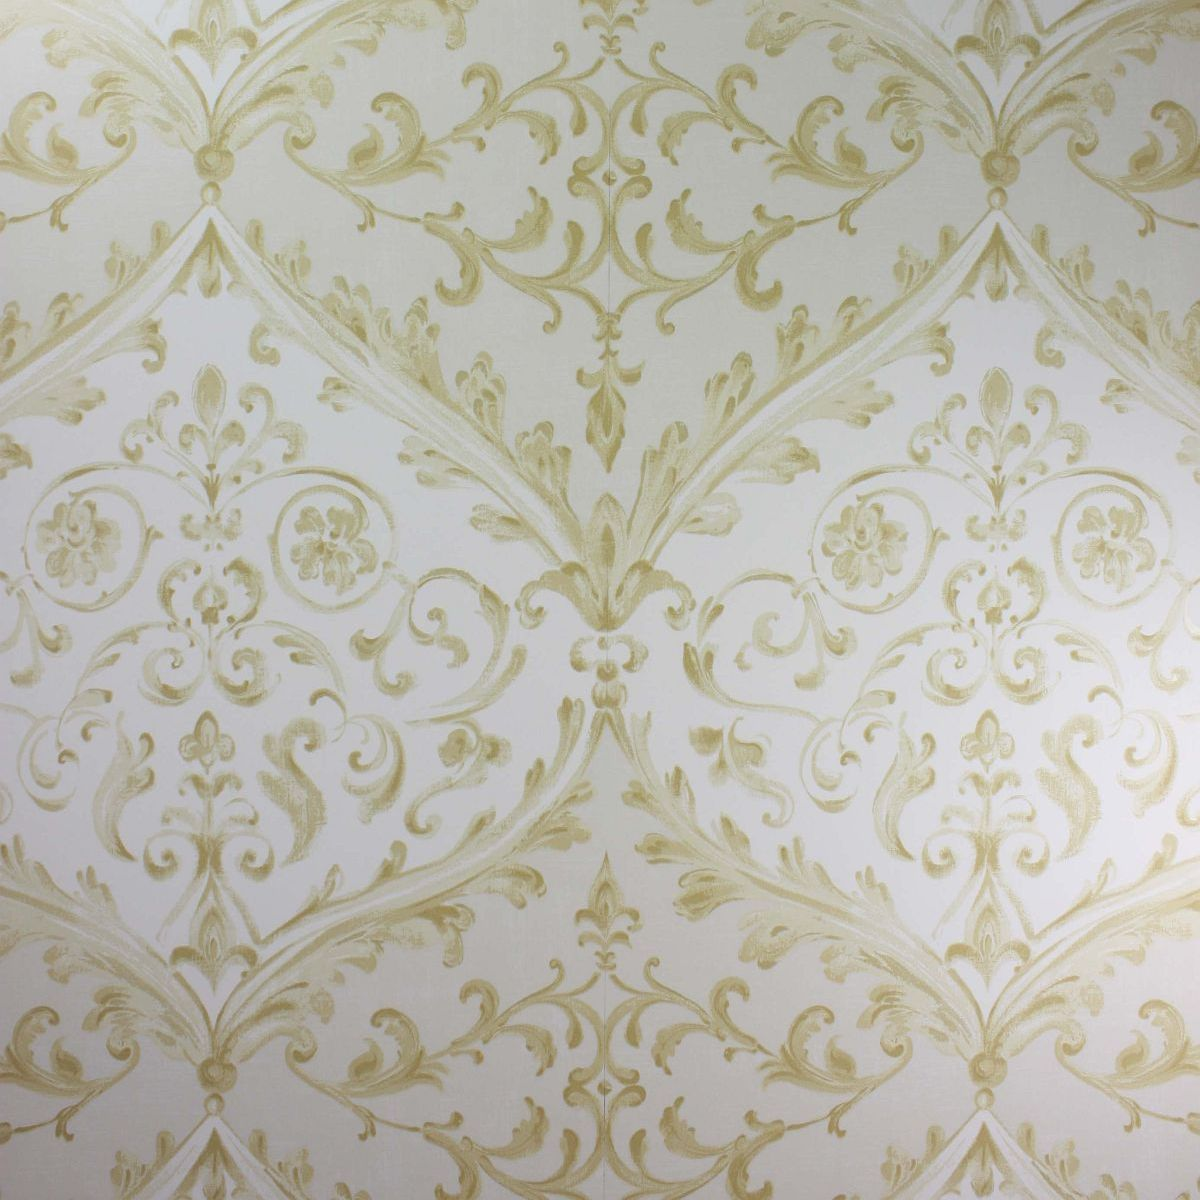 paper-backing wallpaper Nina Campbell Rosslyn Wallpapers NCW4156-05 | paper-backing